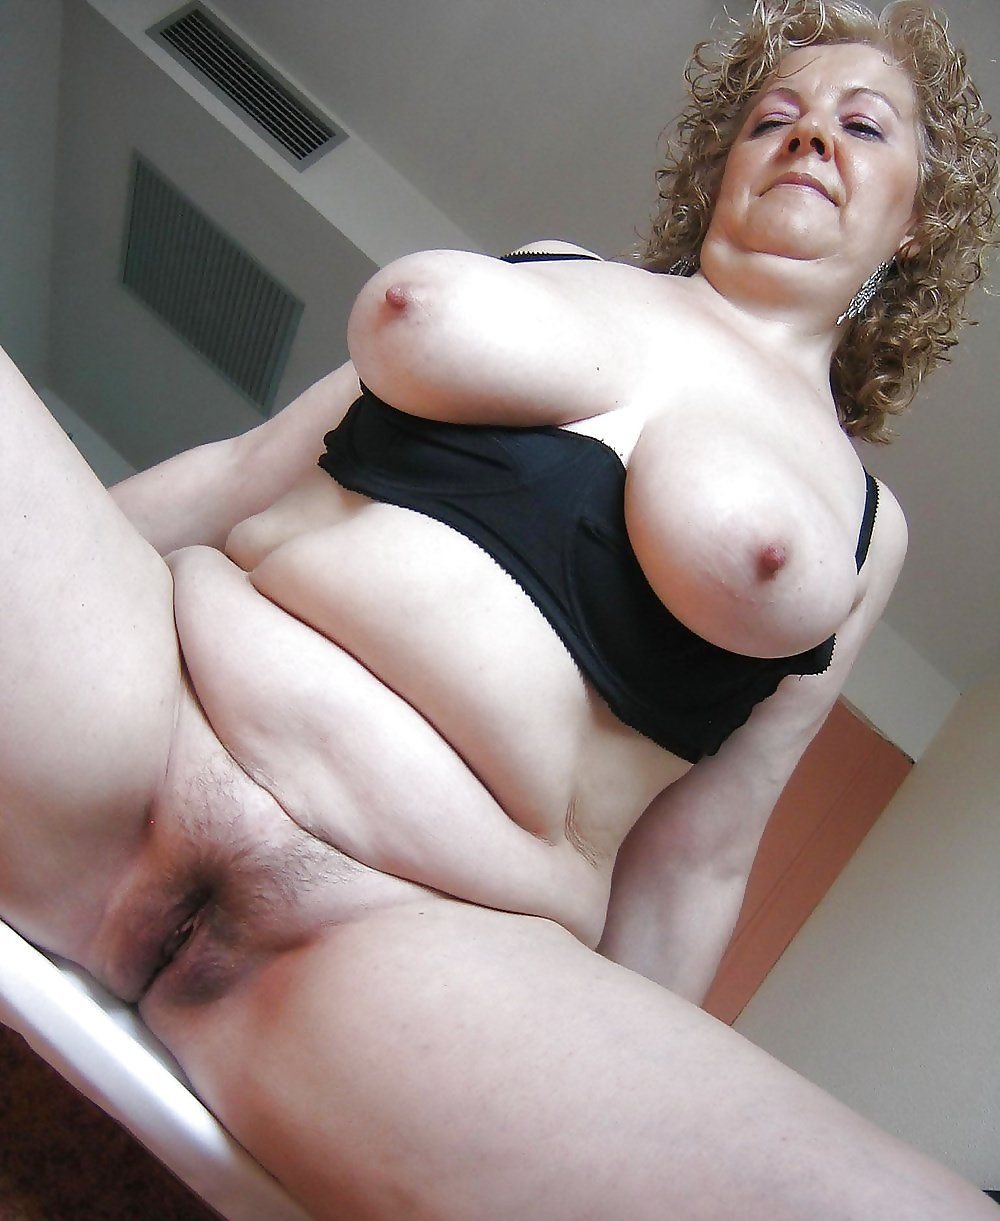 Chubby tits hairy pussy-sex archive